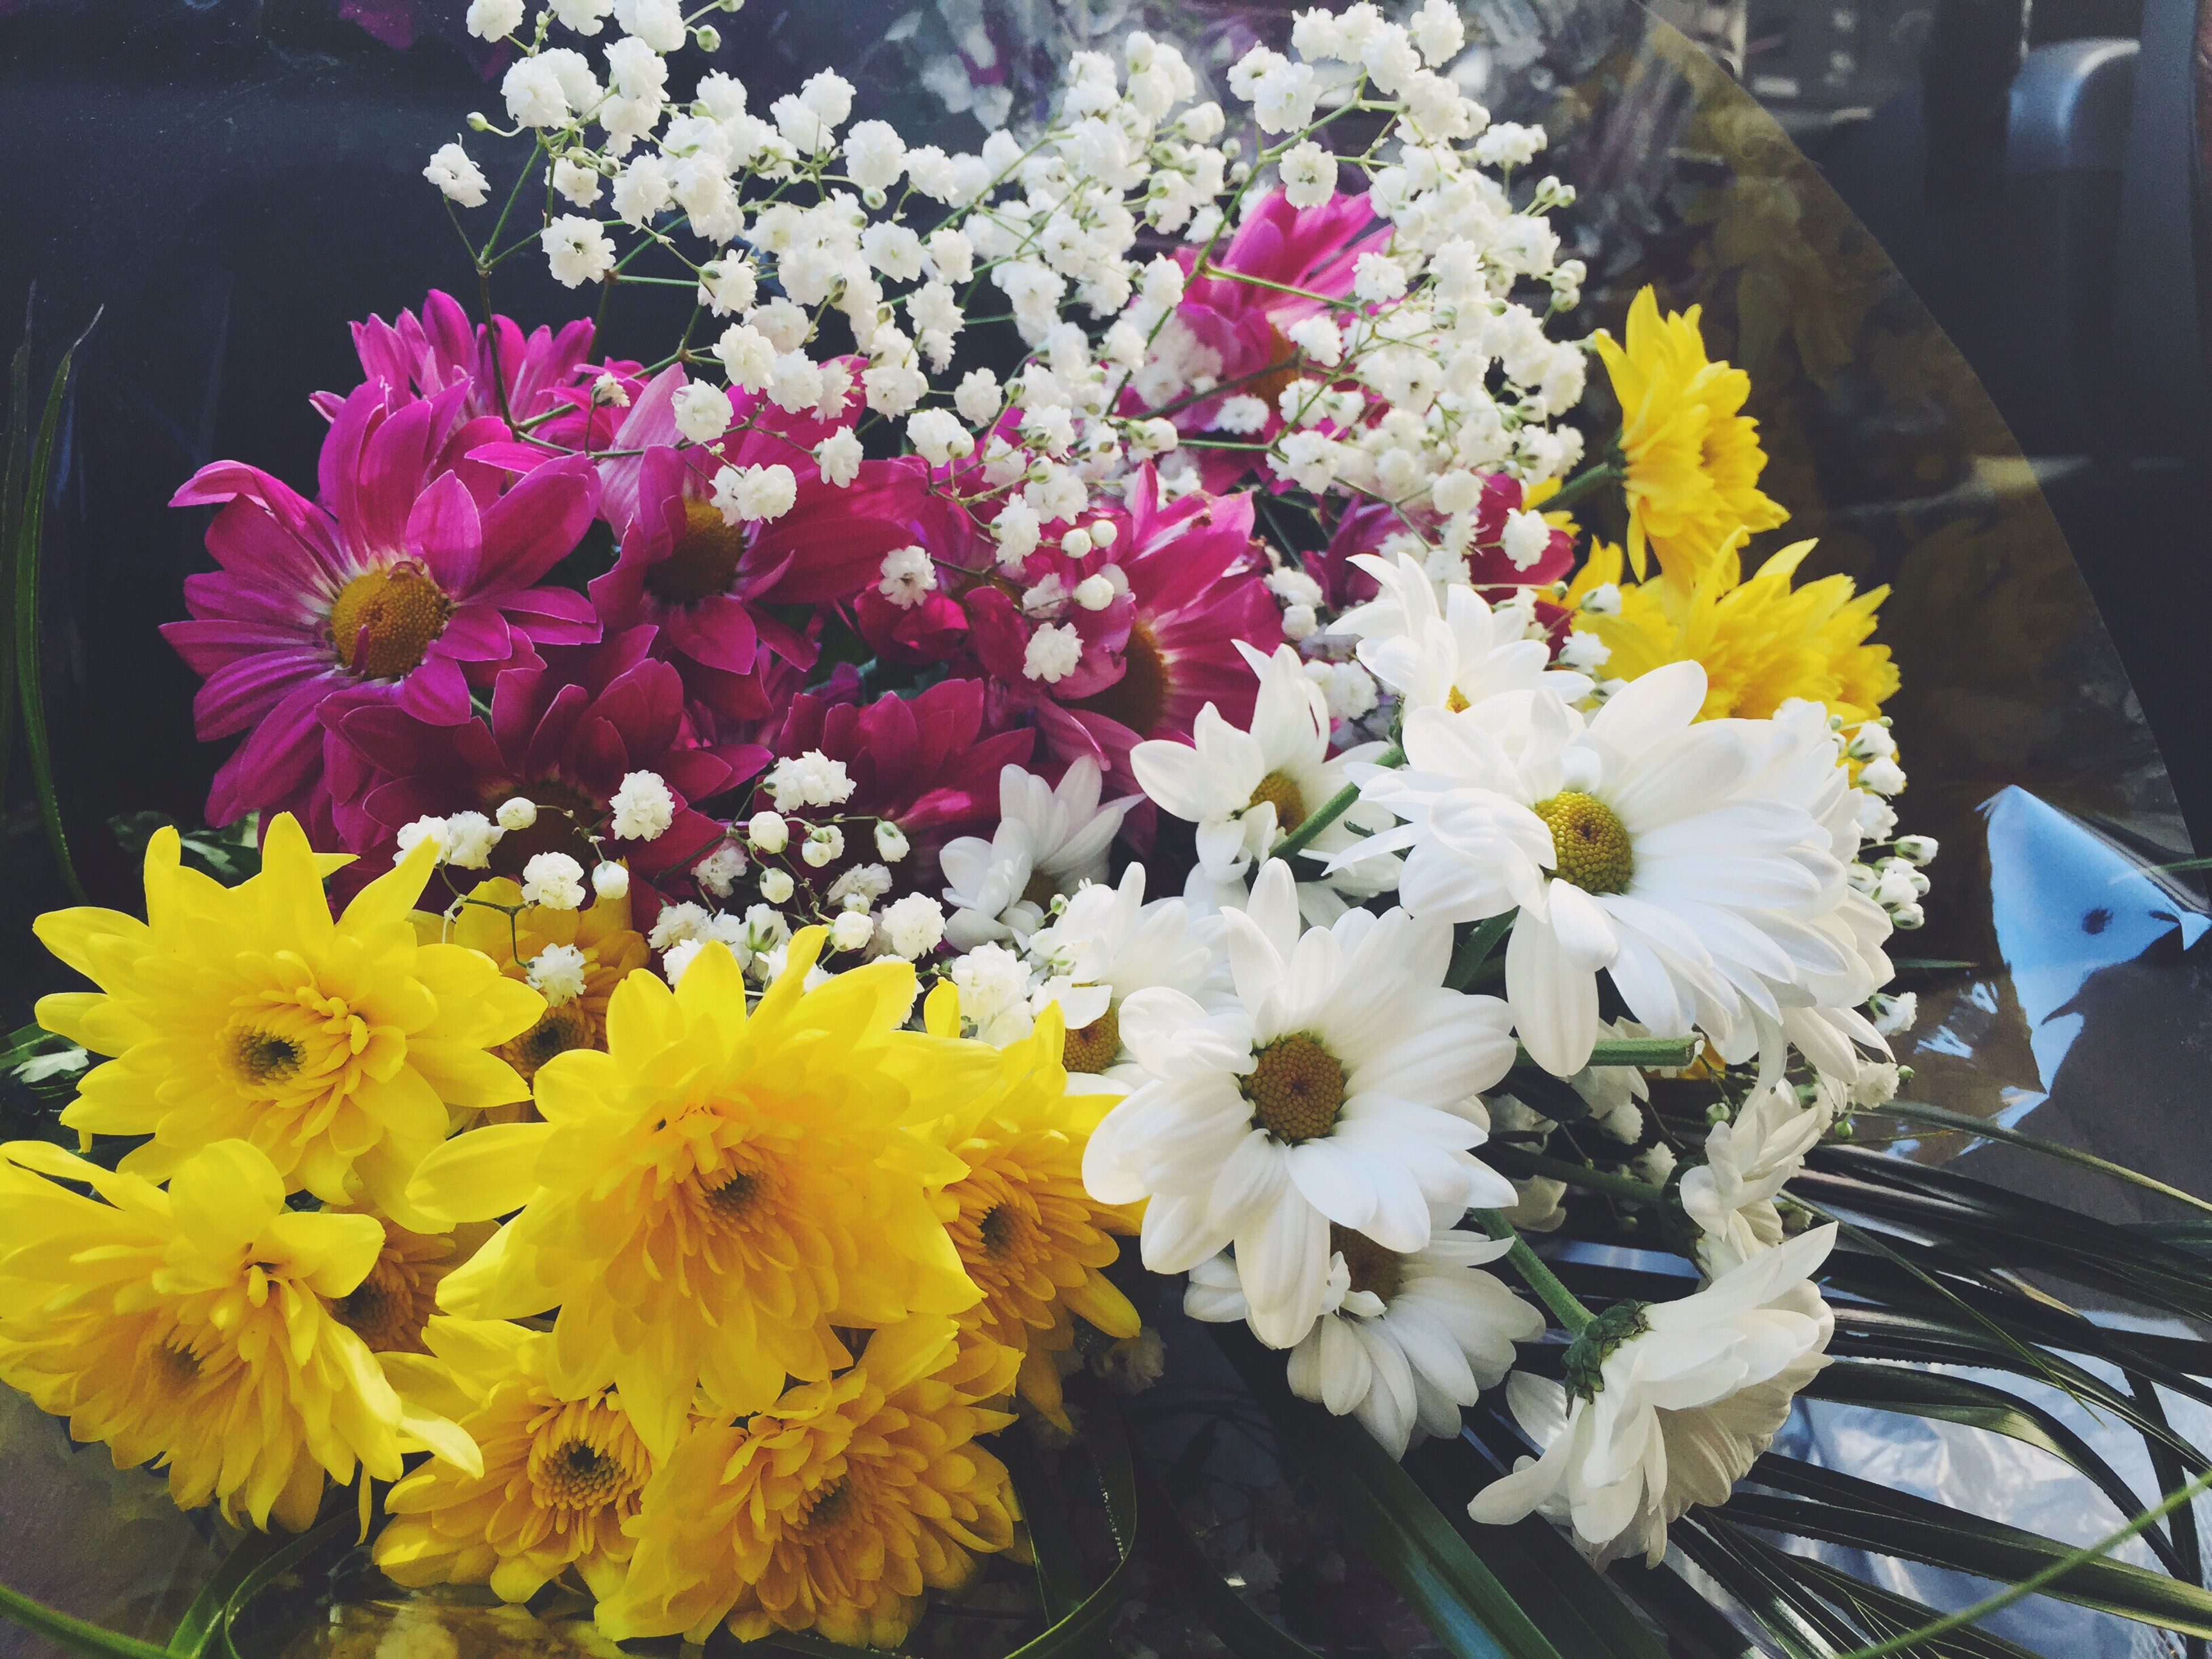 flower, petal, freshness, fragility, flower head, high angle view, beauty in nature, yellow, blooming, growth, nature, in bloom, plant, close-up, blossom, bunch of flowers, day, no people, pink color, multi colored